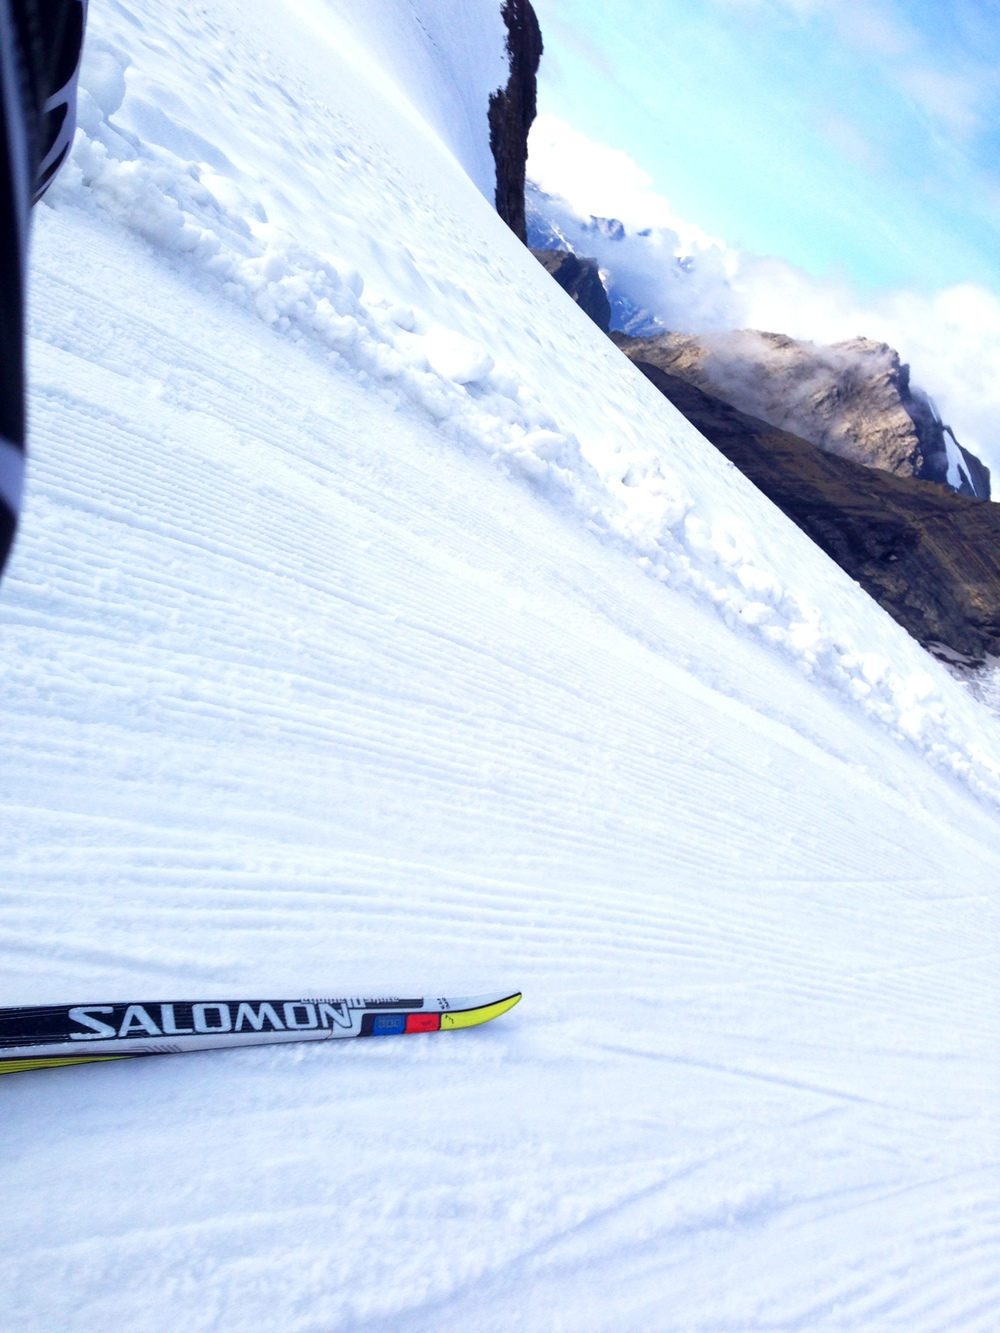 Hard tracks, fast skis, stellar views.